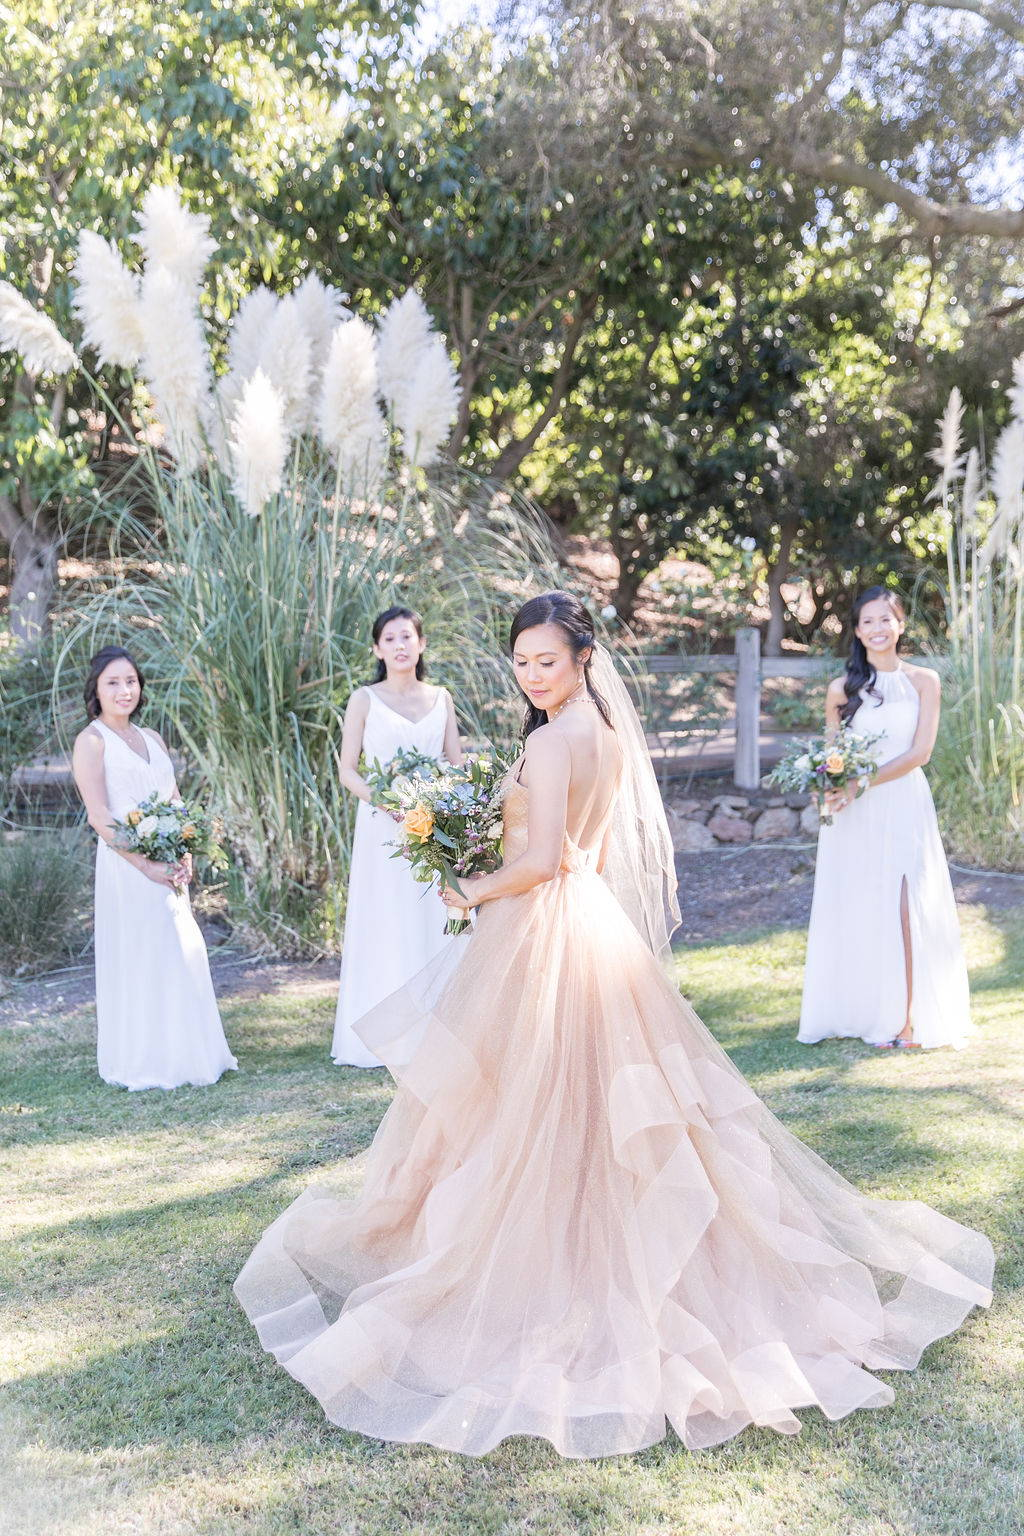 Romantic and lush wedding by Vave